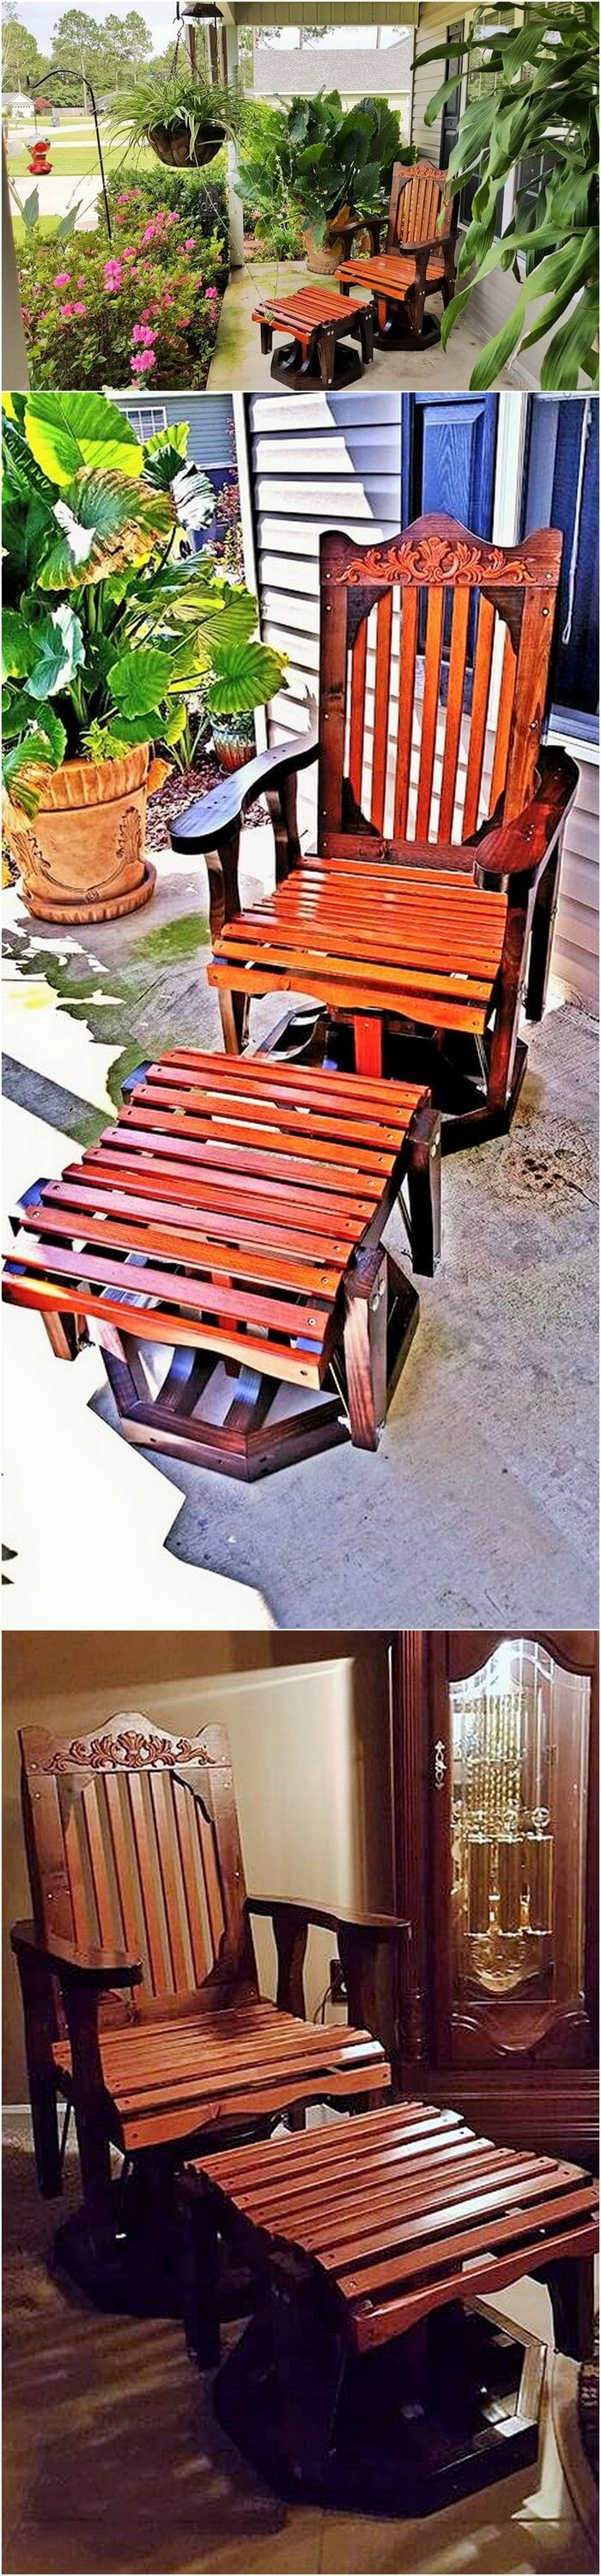 Wood working Garden chair table set